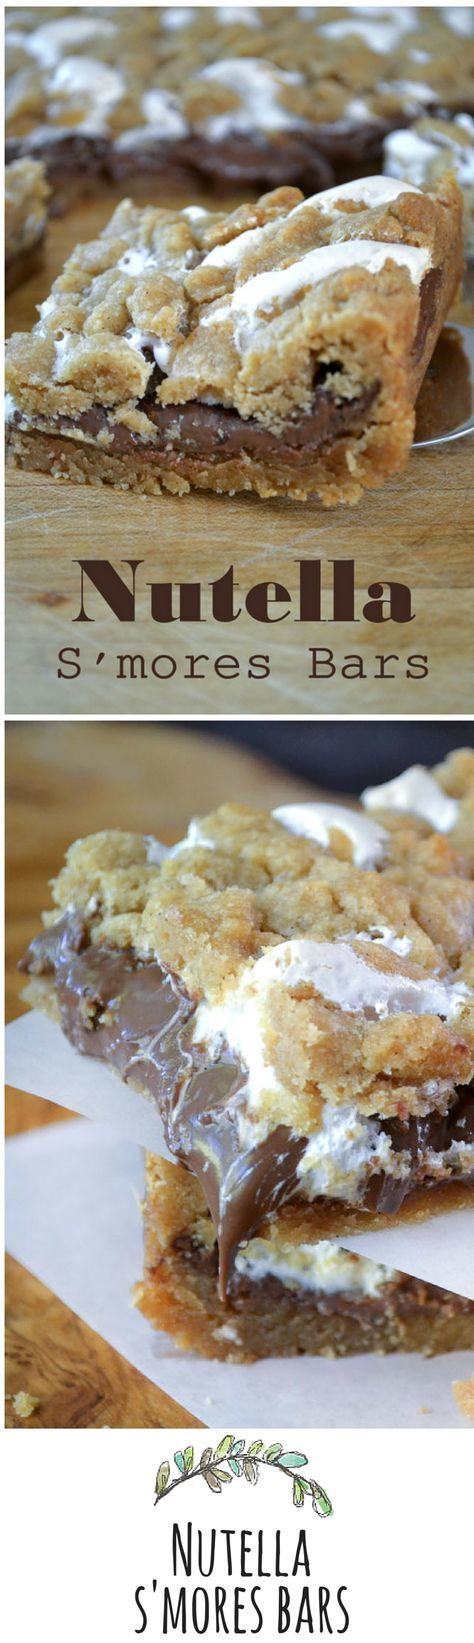 Skip the campfire and make these bars instead! What a delicious and easy dessert bar recipe with Nutella! #DessertBars #Campfires